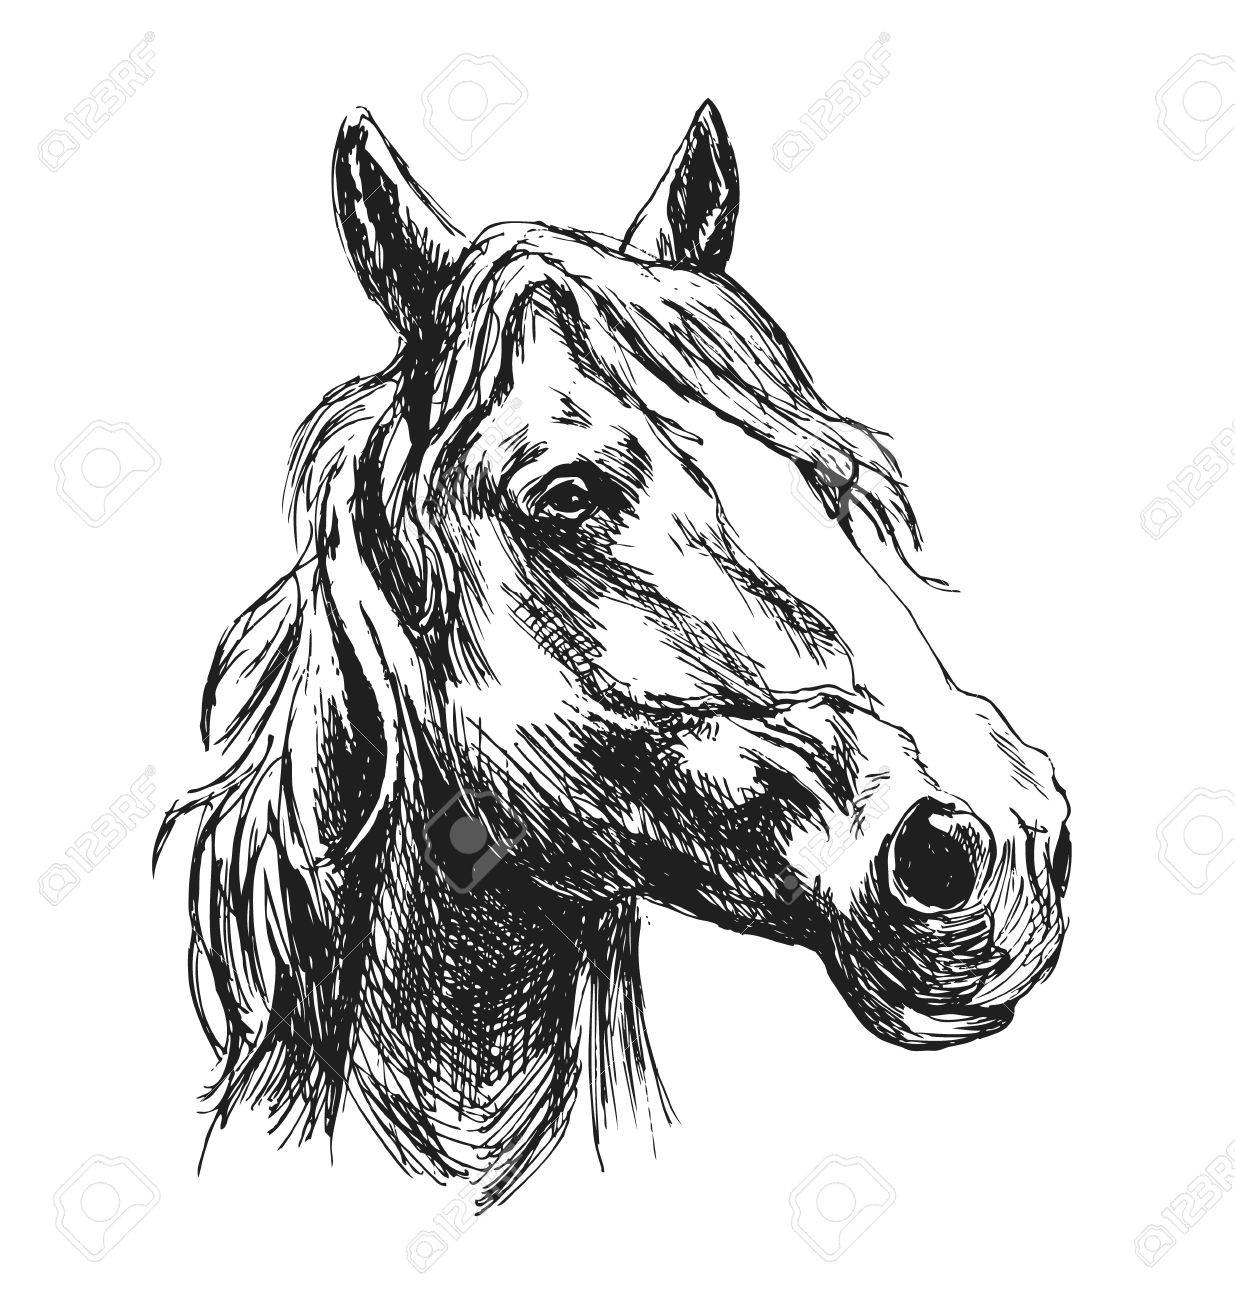 Hand Sketch Horse Head Vector Illustration Royalty Free Cliparts Vectors And Stock Illustration Image 69424995